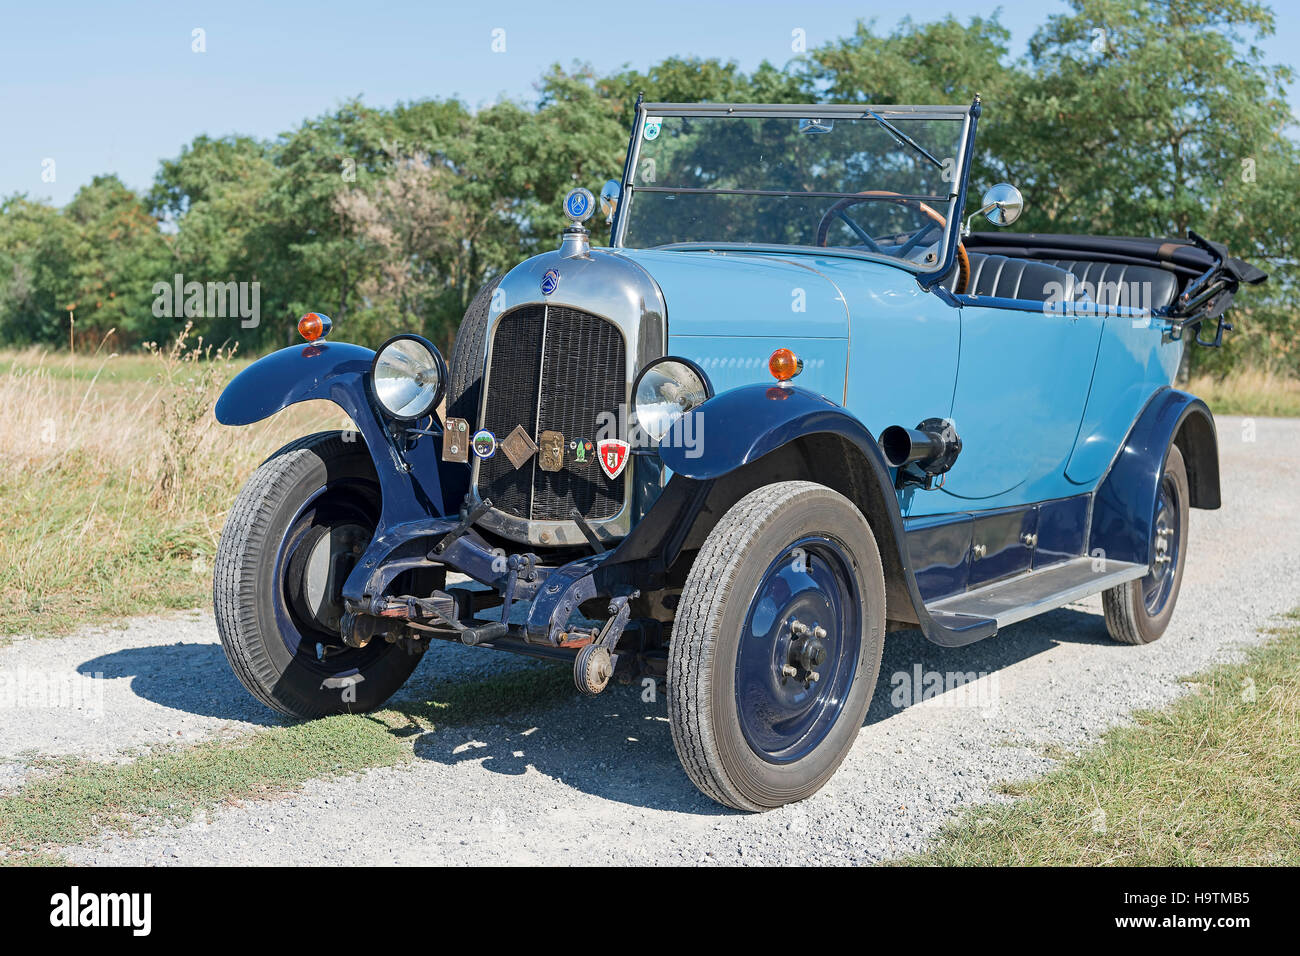 Vintage car, Citroen B10, Torpedo Commerciale, built in 1925, 4-cylinder inline engine, engine capacity 1470 cc, Stock Photo